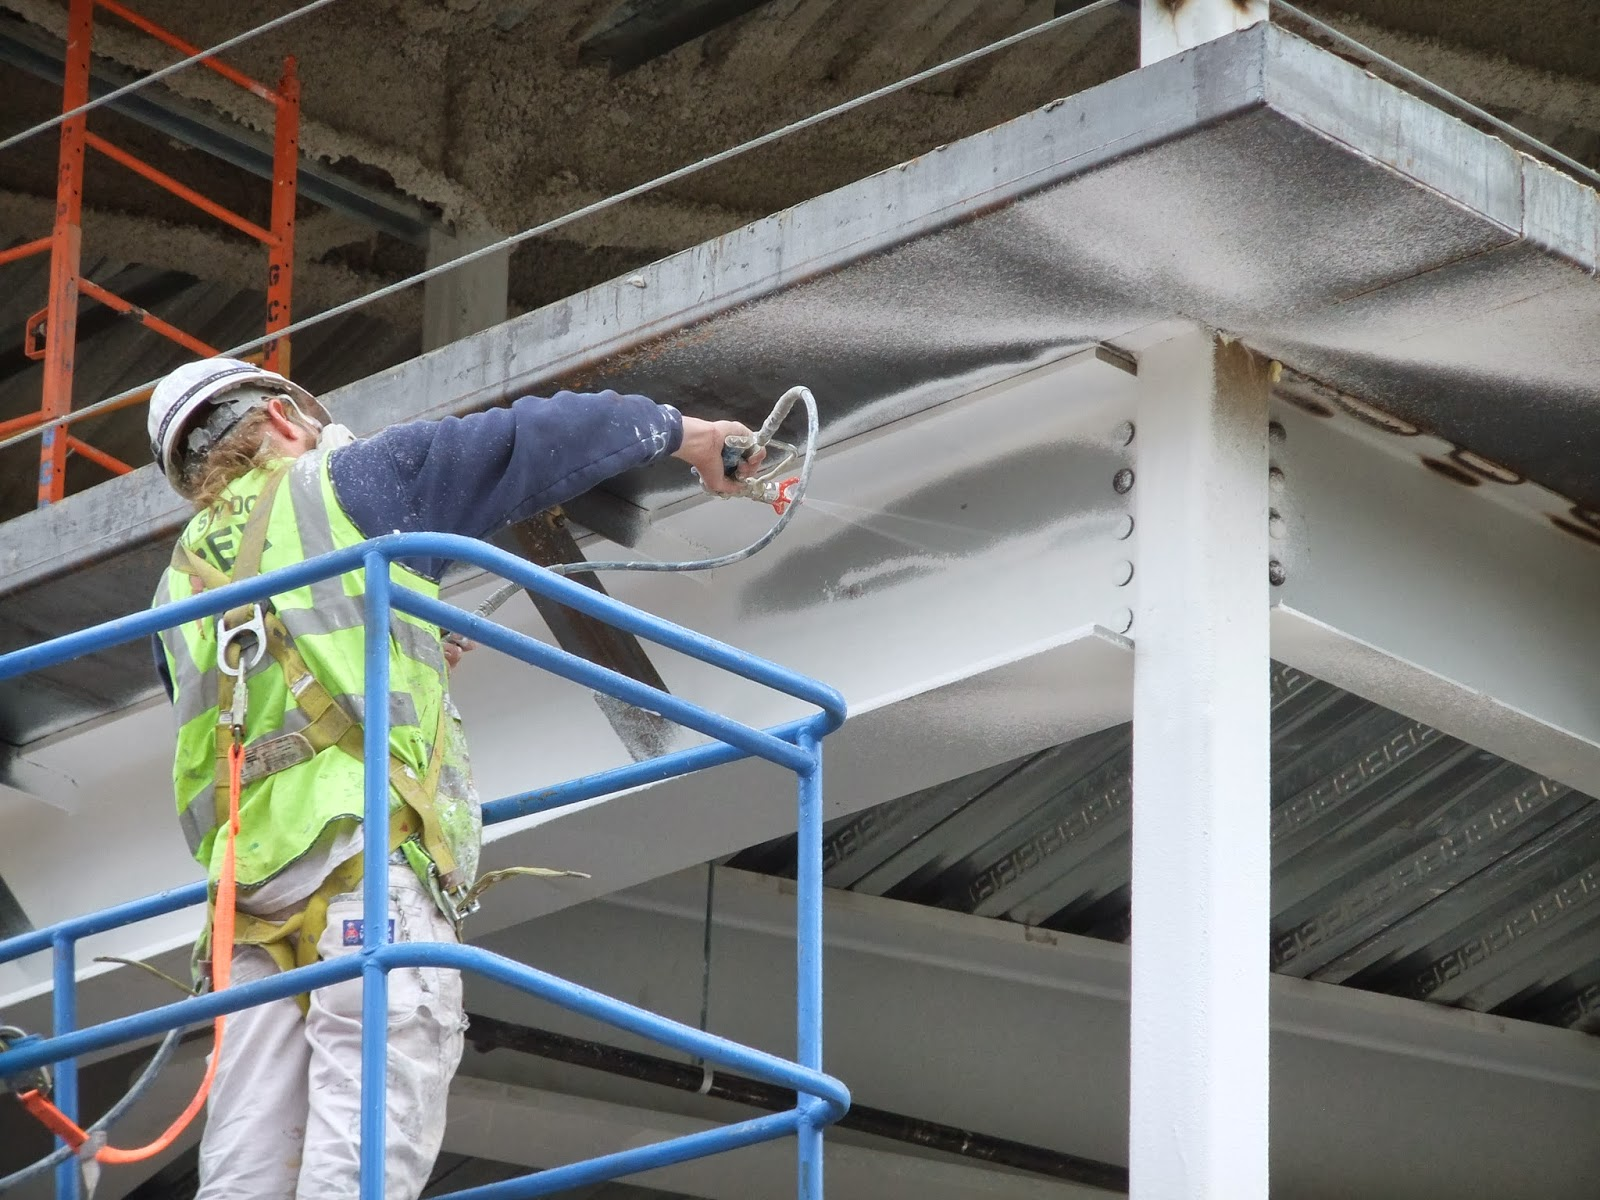 Fire Protection Of Metal Structures With Fireproof Paint